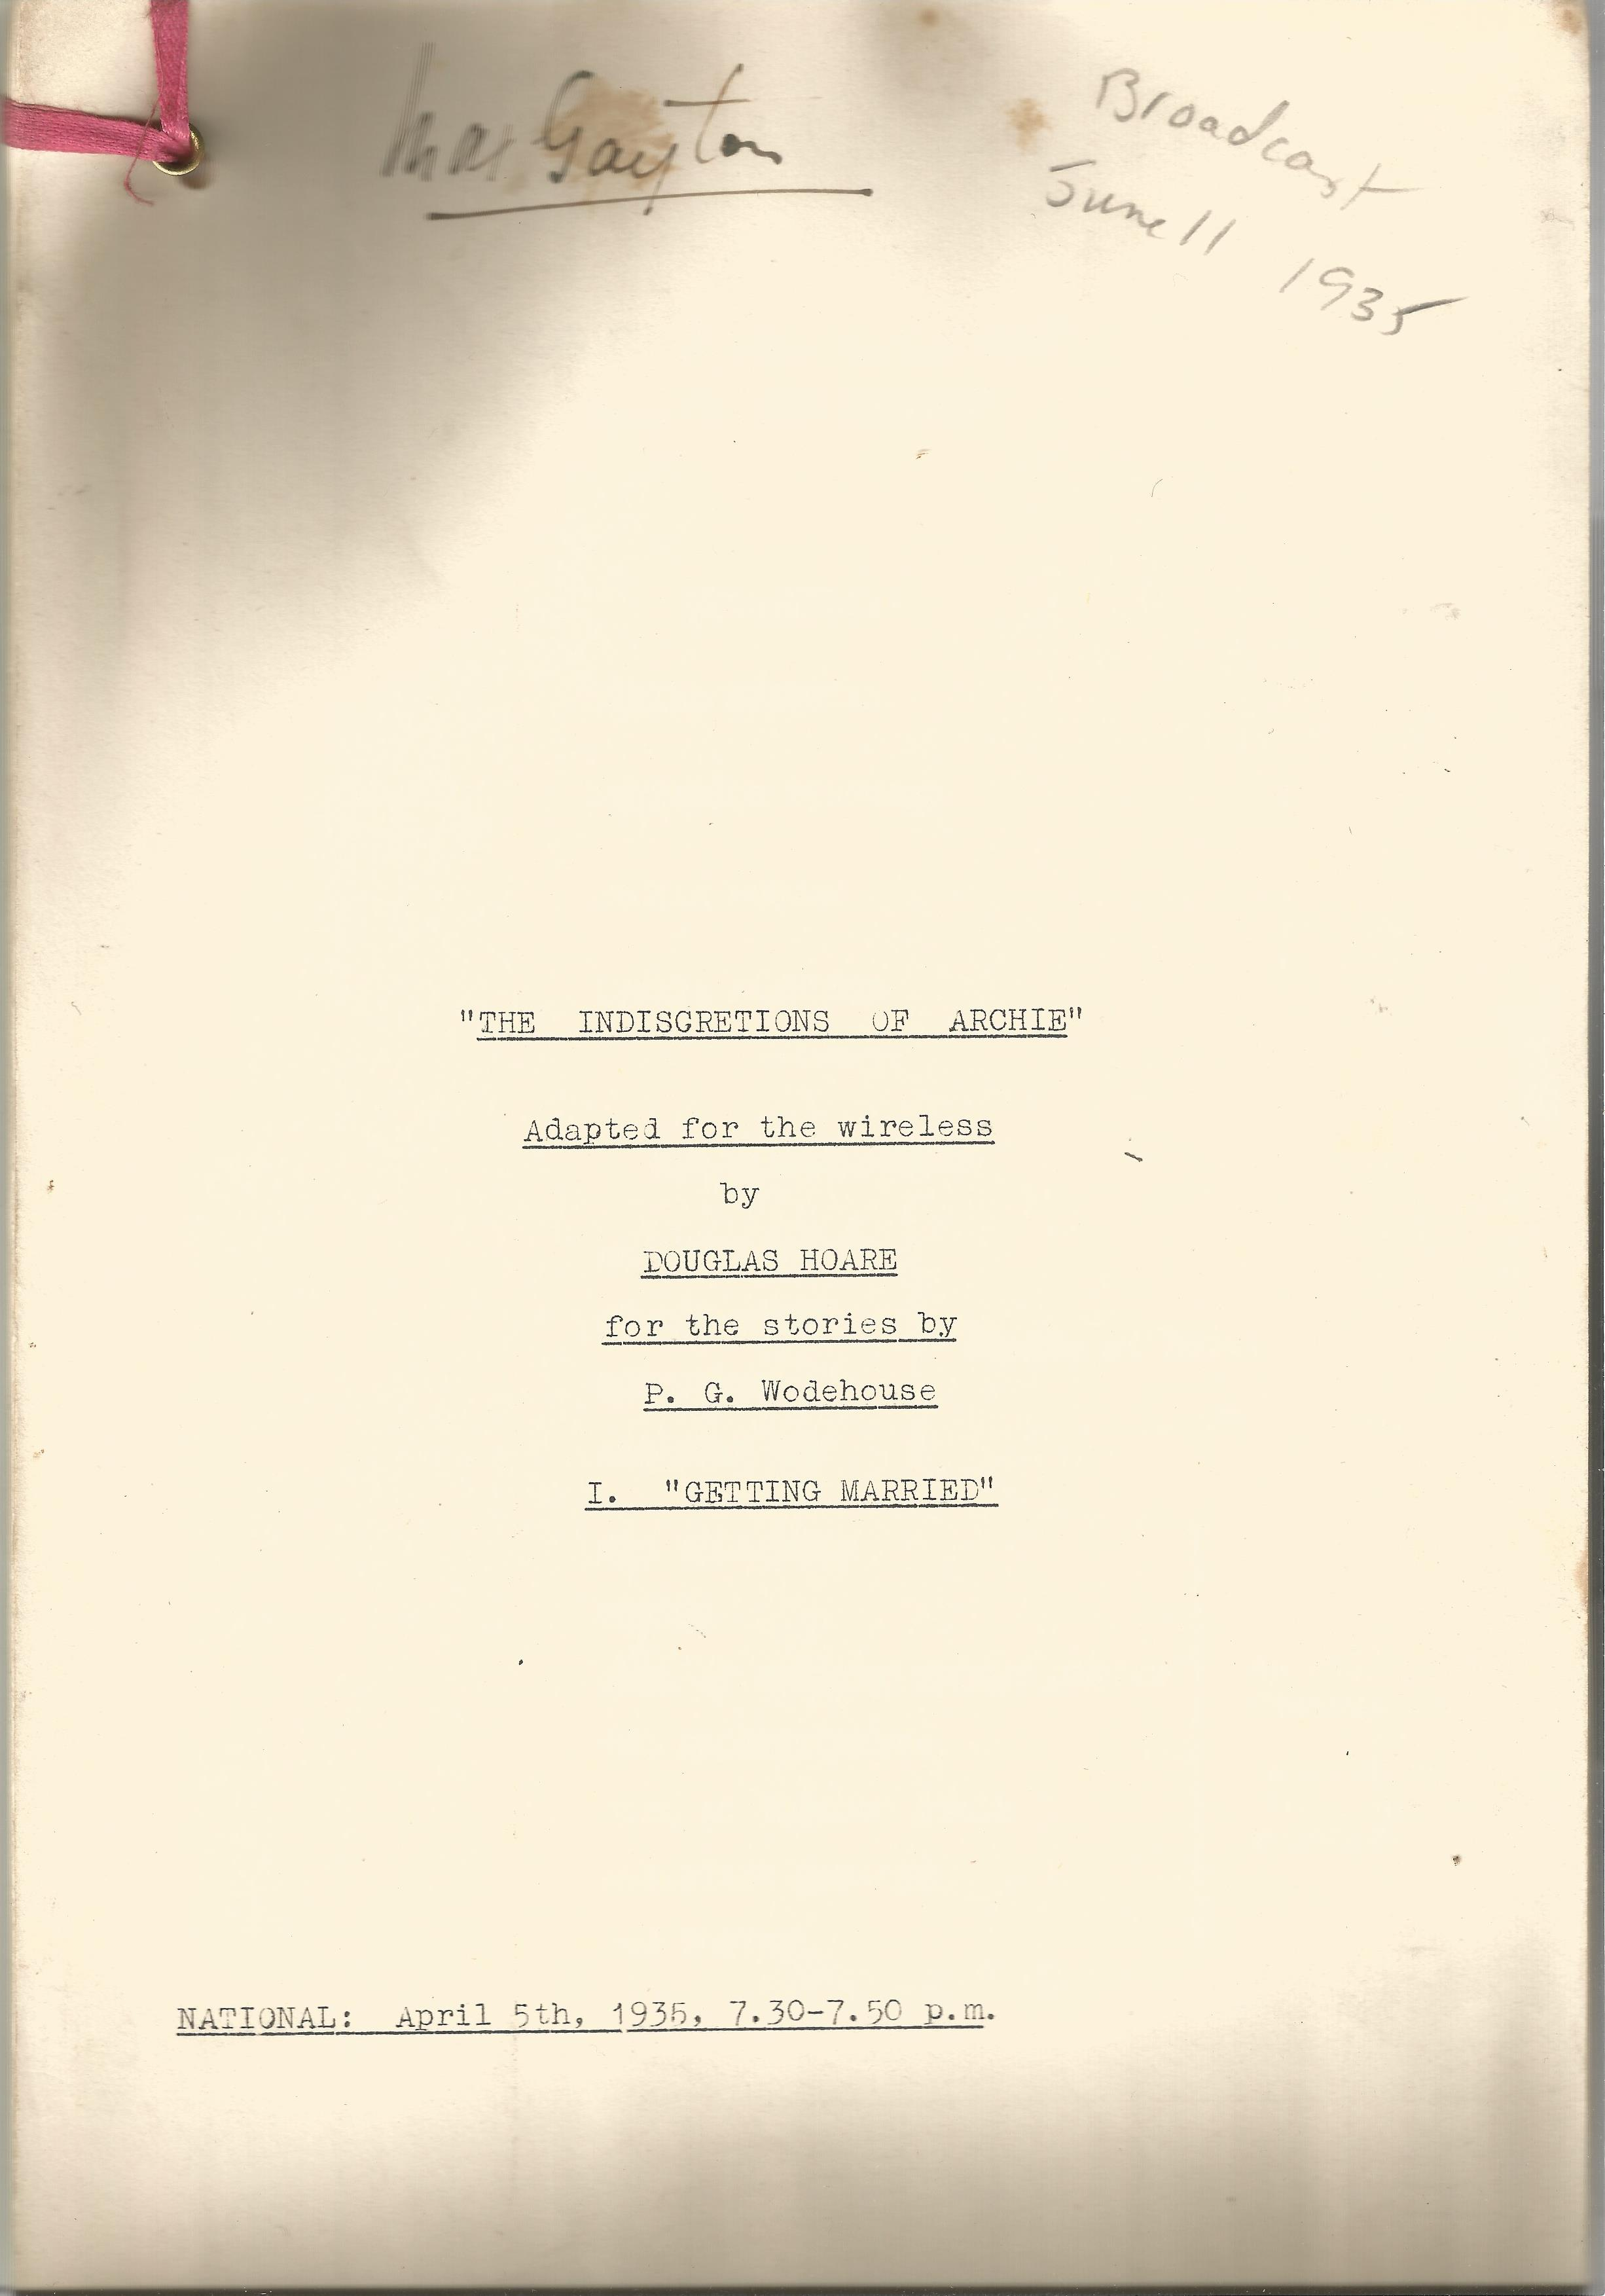 Radio Broadcast Script The Indiscretions of Archie adapted by Douglas Hoare 1935 Signed by Max